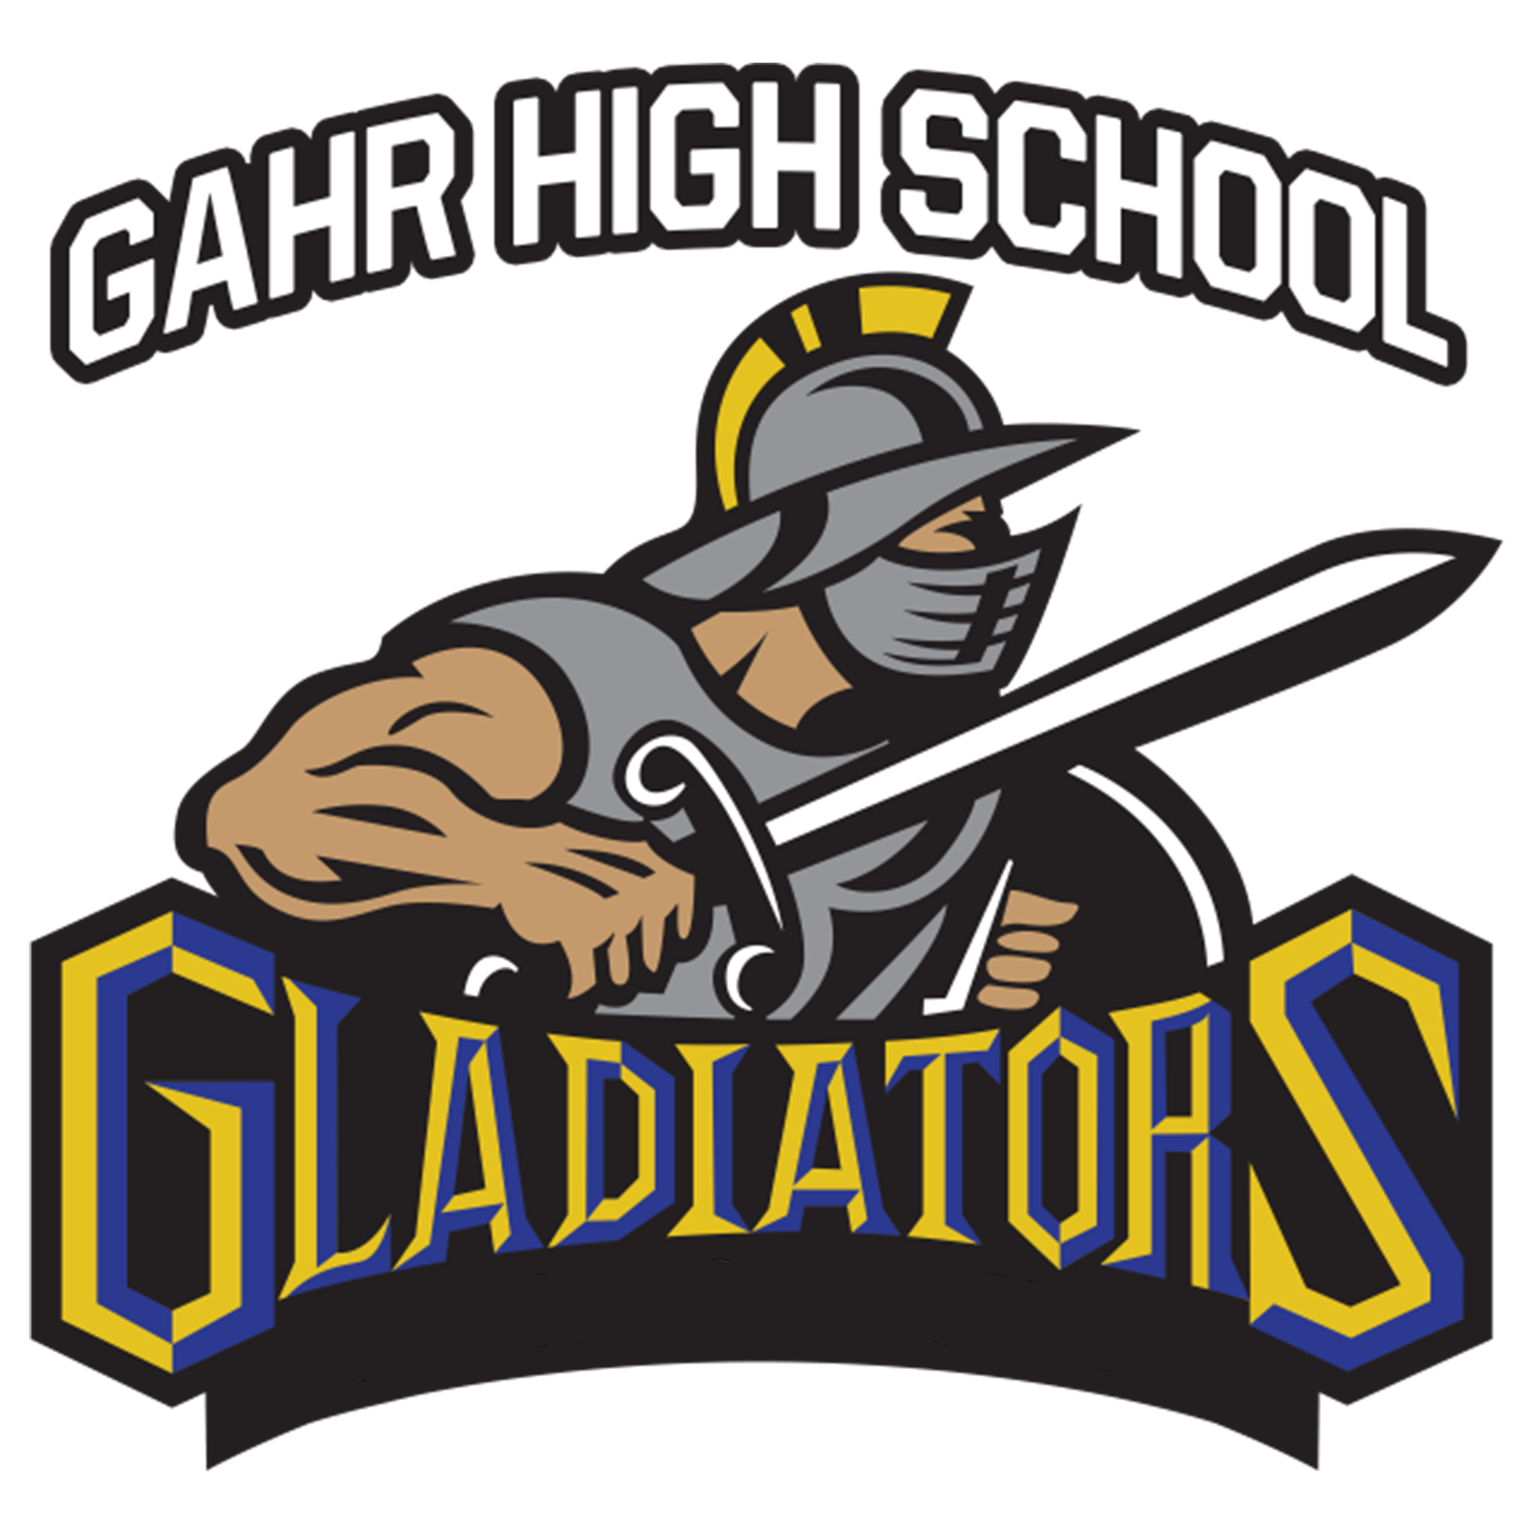 Gahr Gladiators